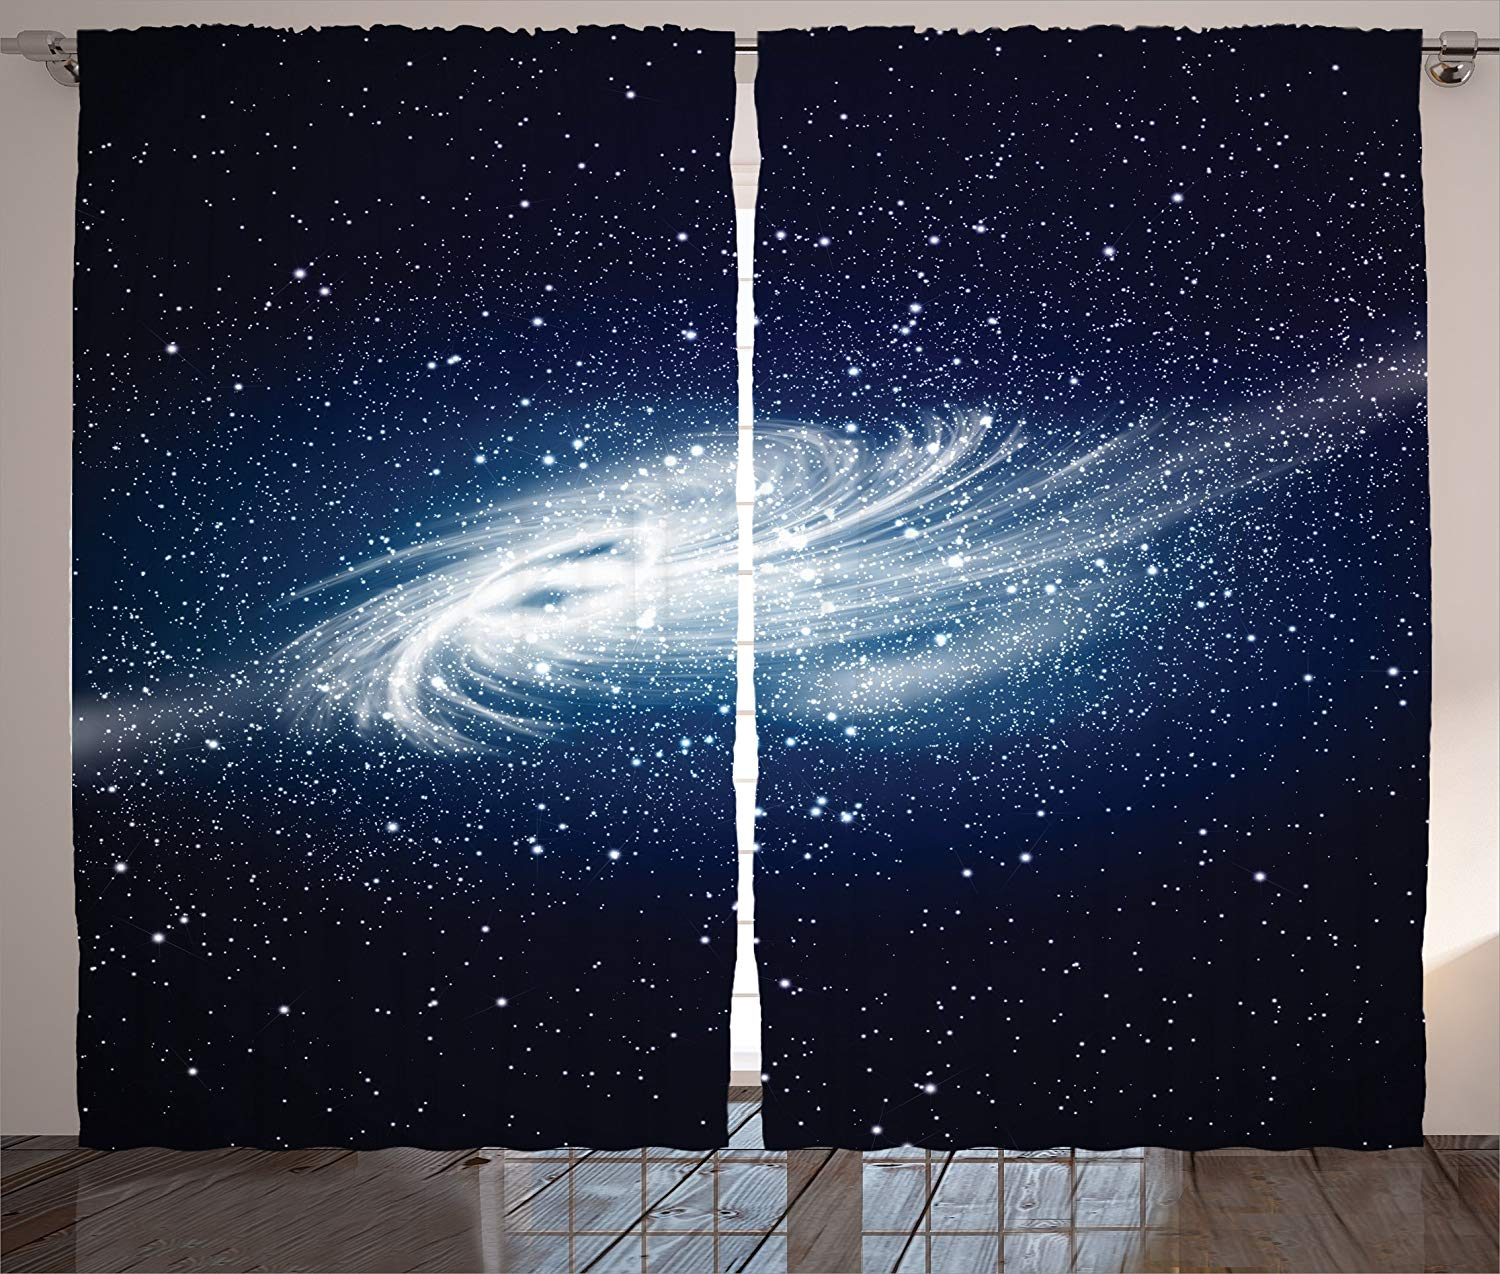 Space Curtains Spiral Galaxy Image Space And Stars Celestial Cosmos Expanse Universe Modern Print Living Room Bedroom Decor